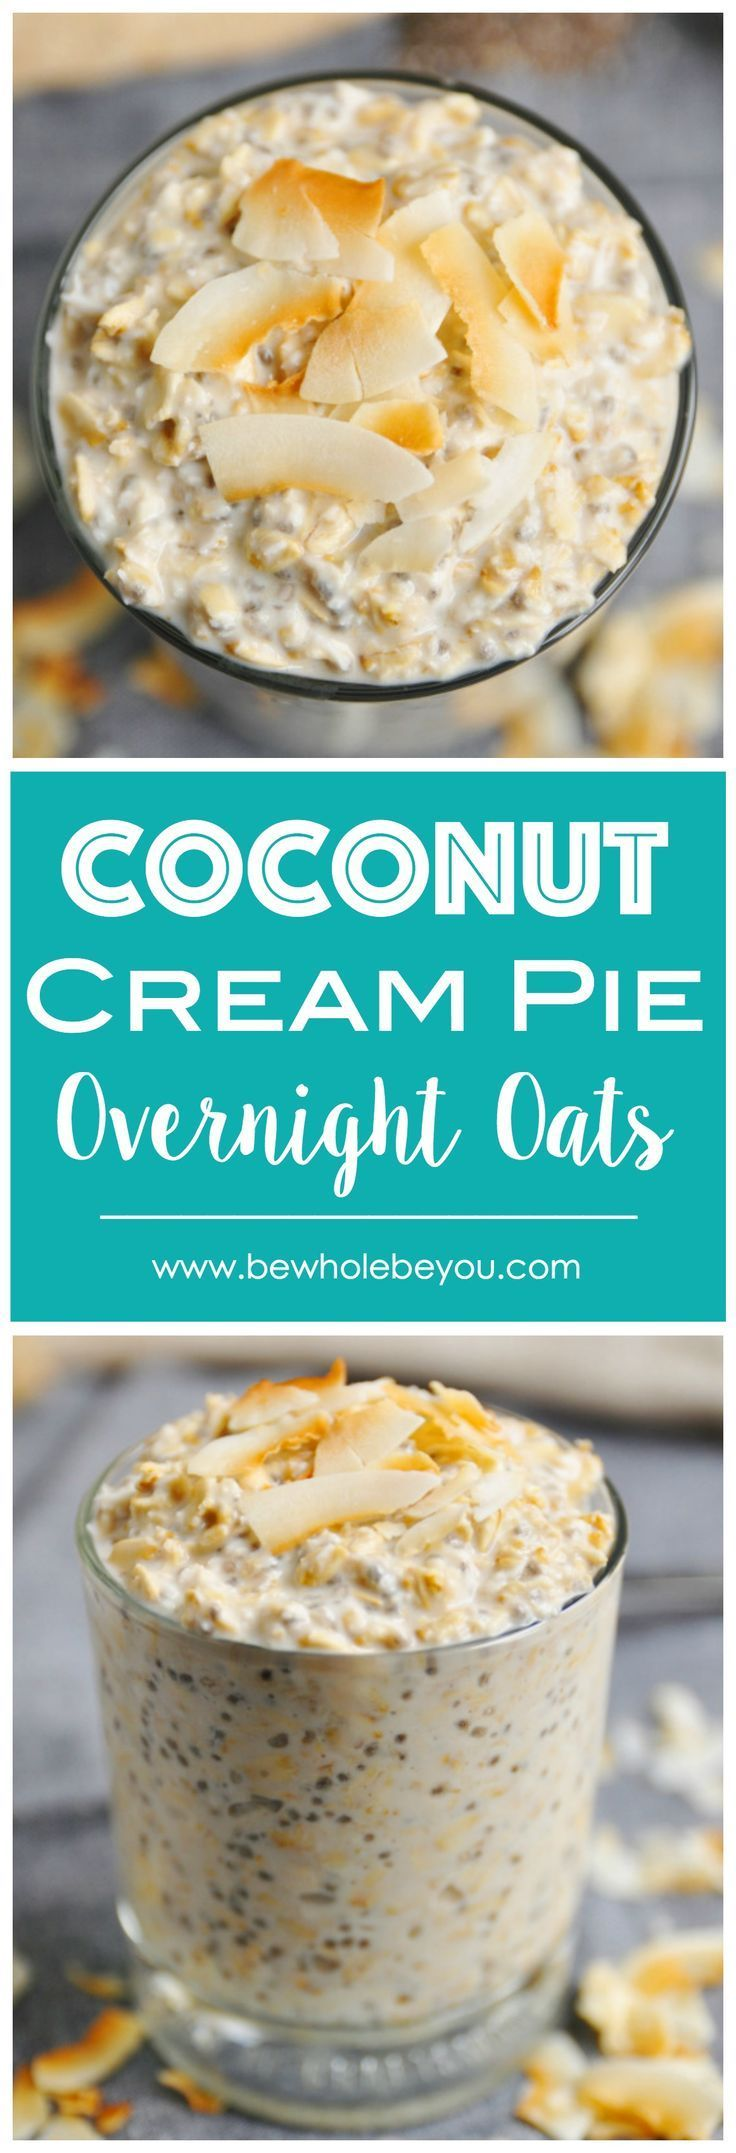 f7c8dc3cbad356bd9b6f040470dff915  coconut cream pies coconut cream breakfast Coconut Cream Pie Overnight Oats. Coconut cream pie for breakfast! These overnig...